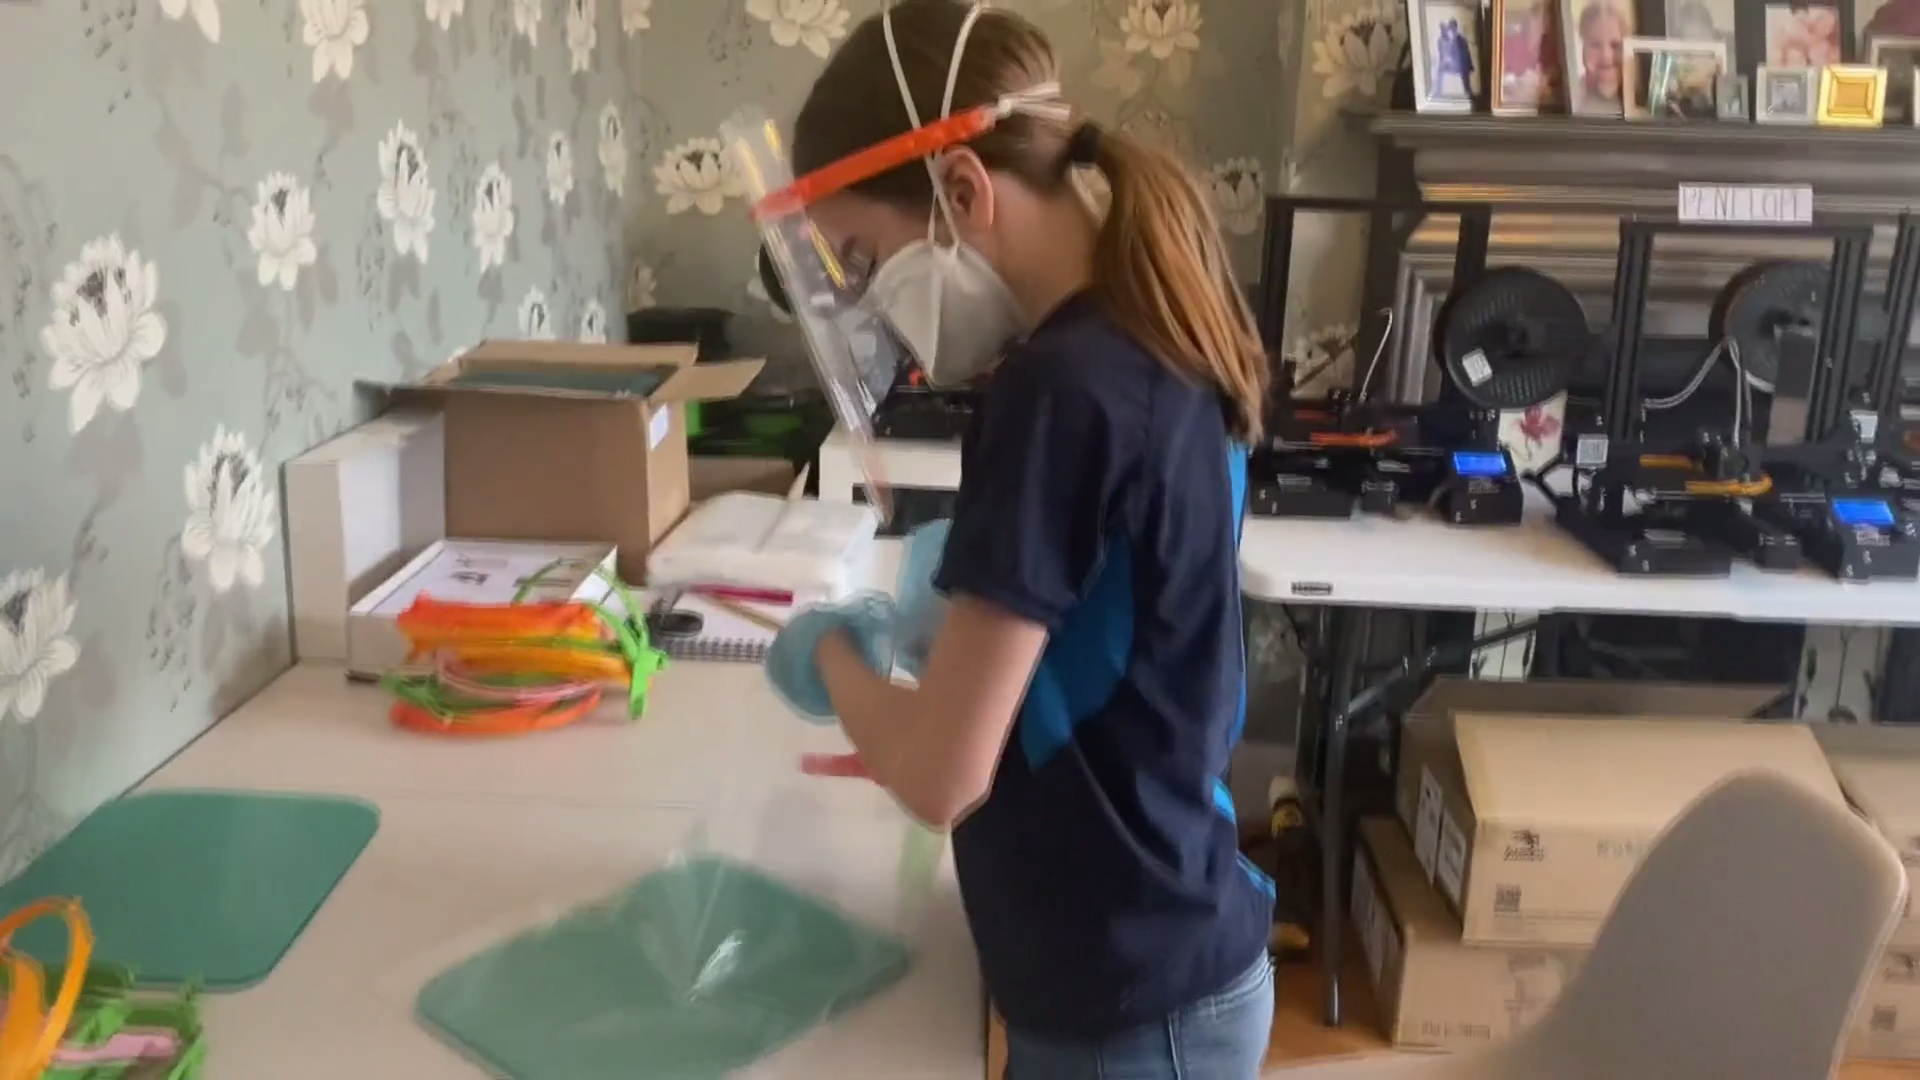 Family transforms home into factory to make visors for NHS - channel 4